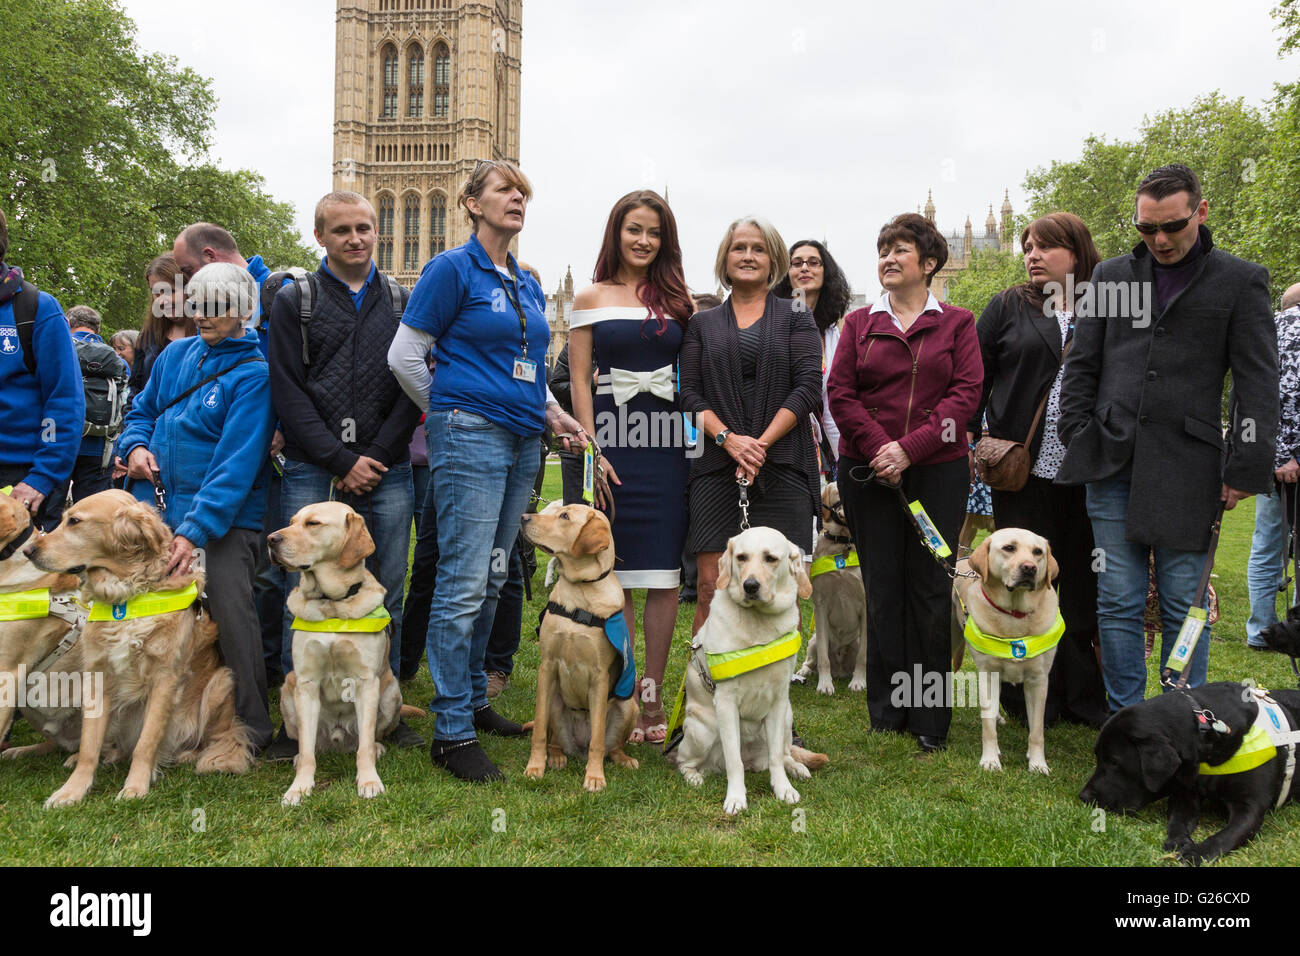 london uk 25 may 2016 l r jay taylor with itv guide dog puppy rh alamy com guide dog owners responsibilities guide dog owner refuses